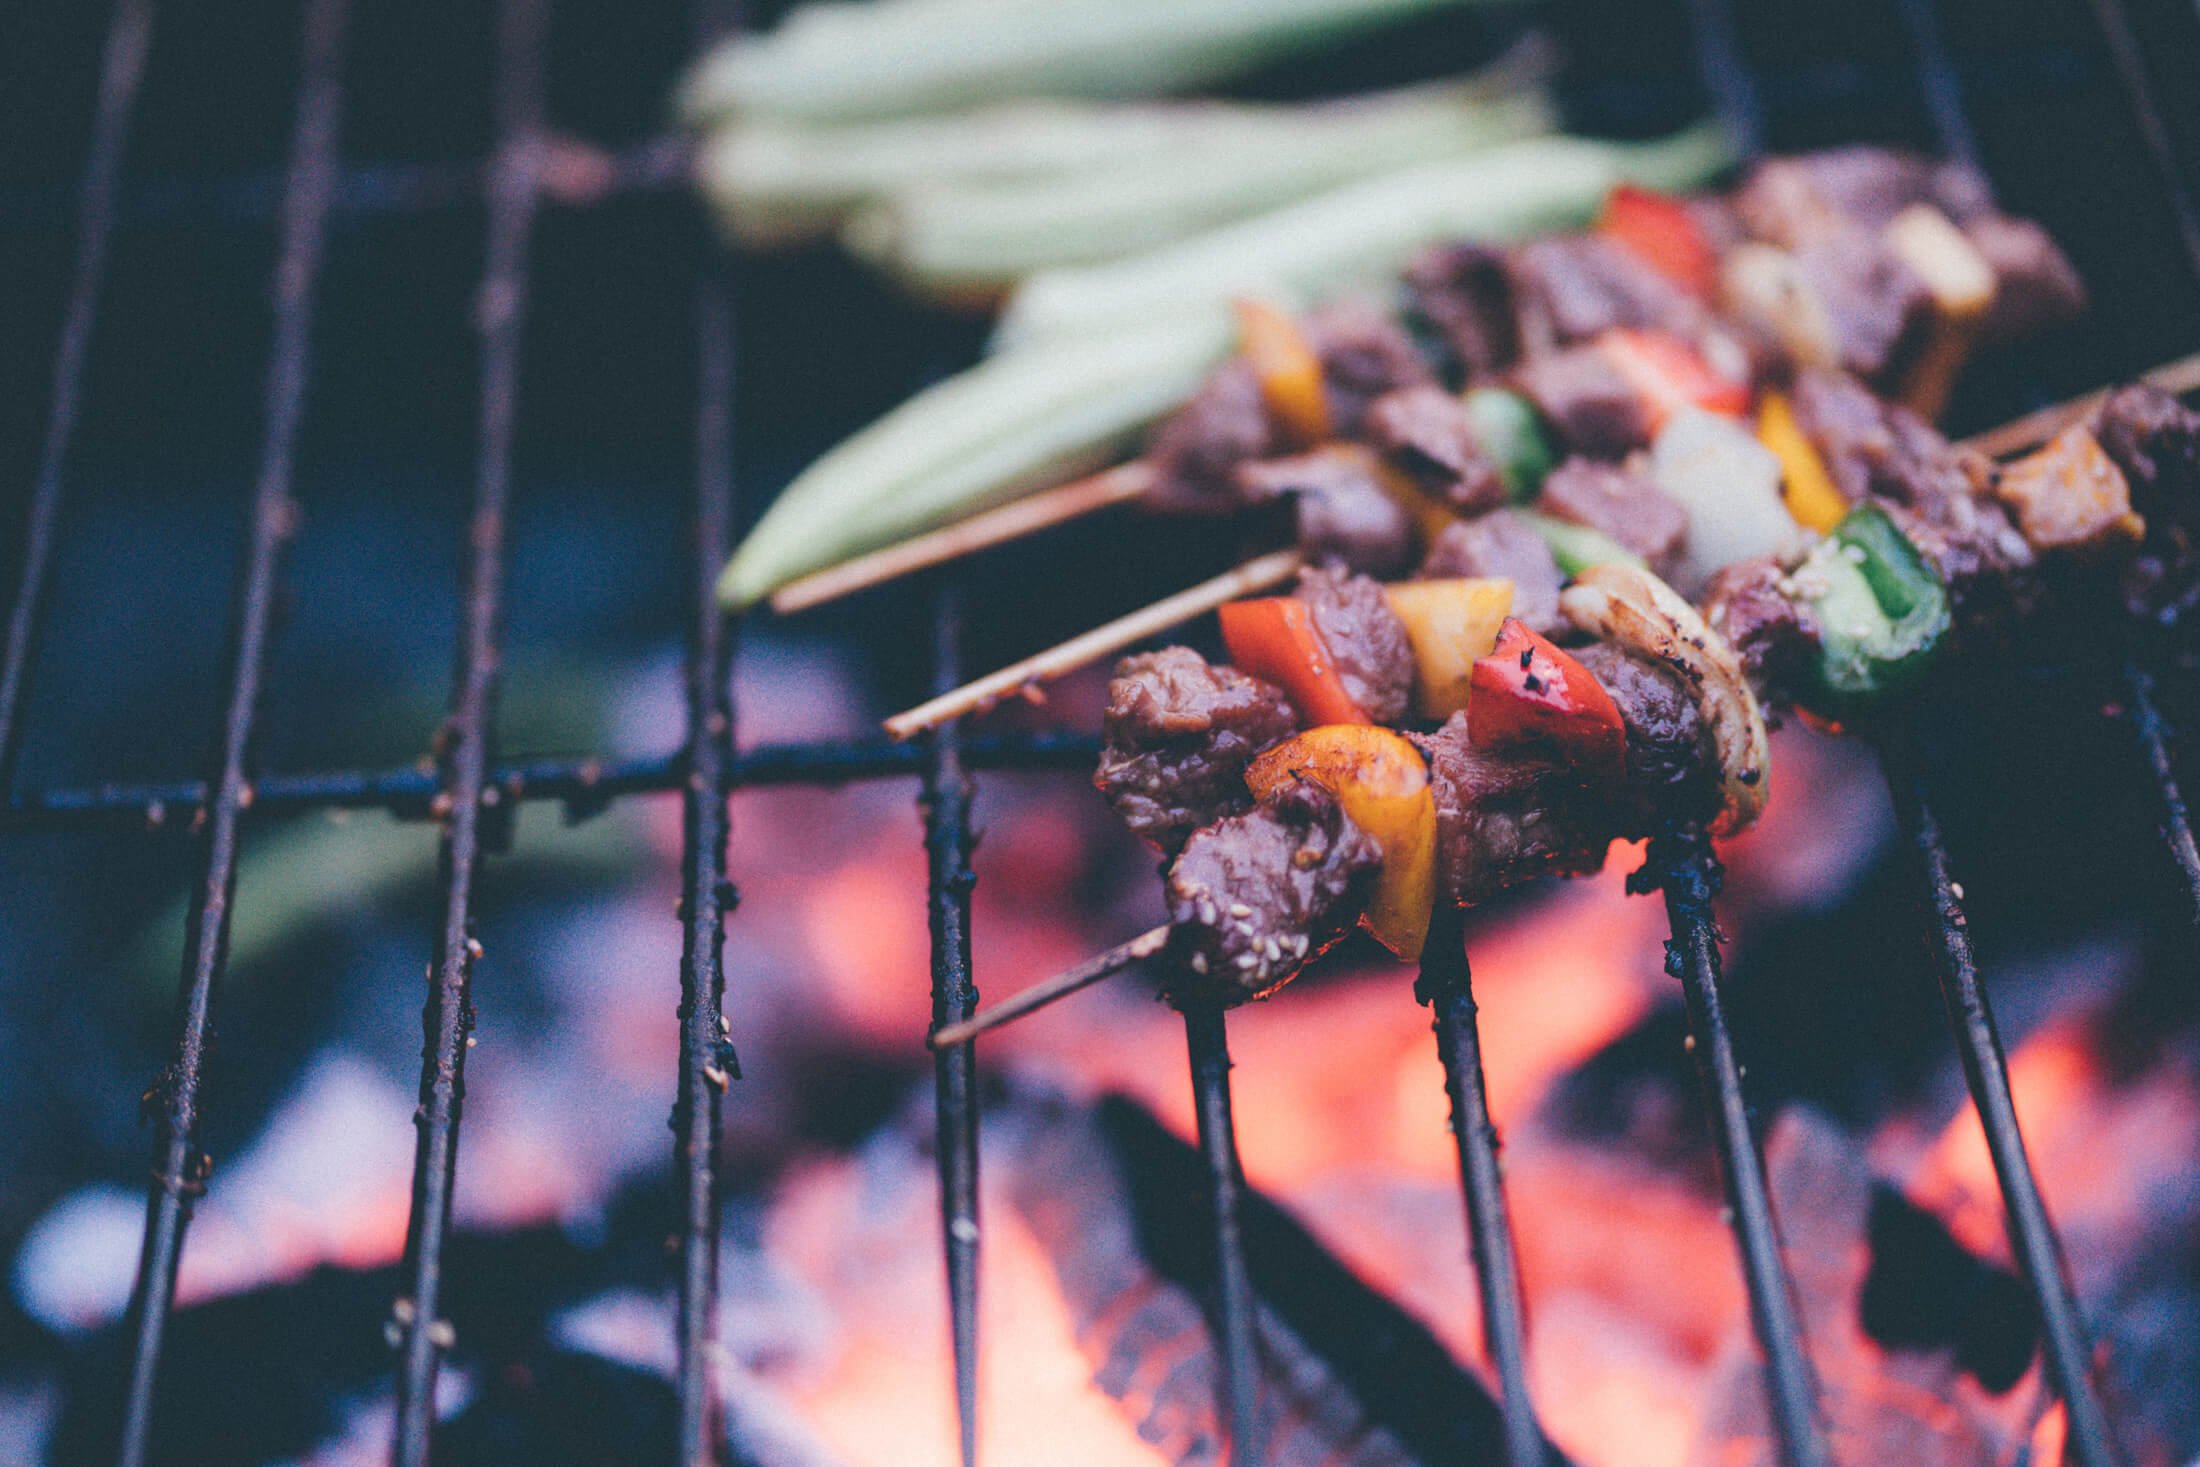 cooking on an outdoor fireplace